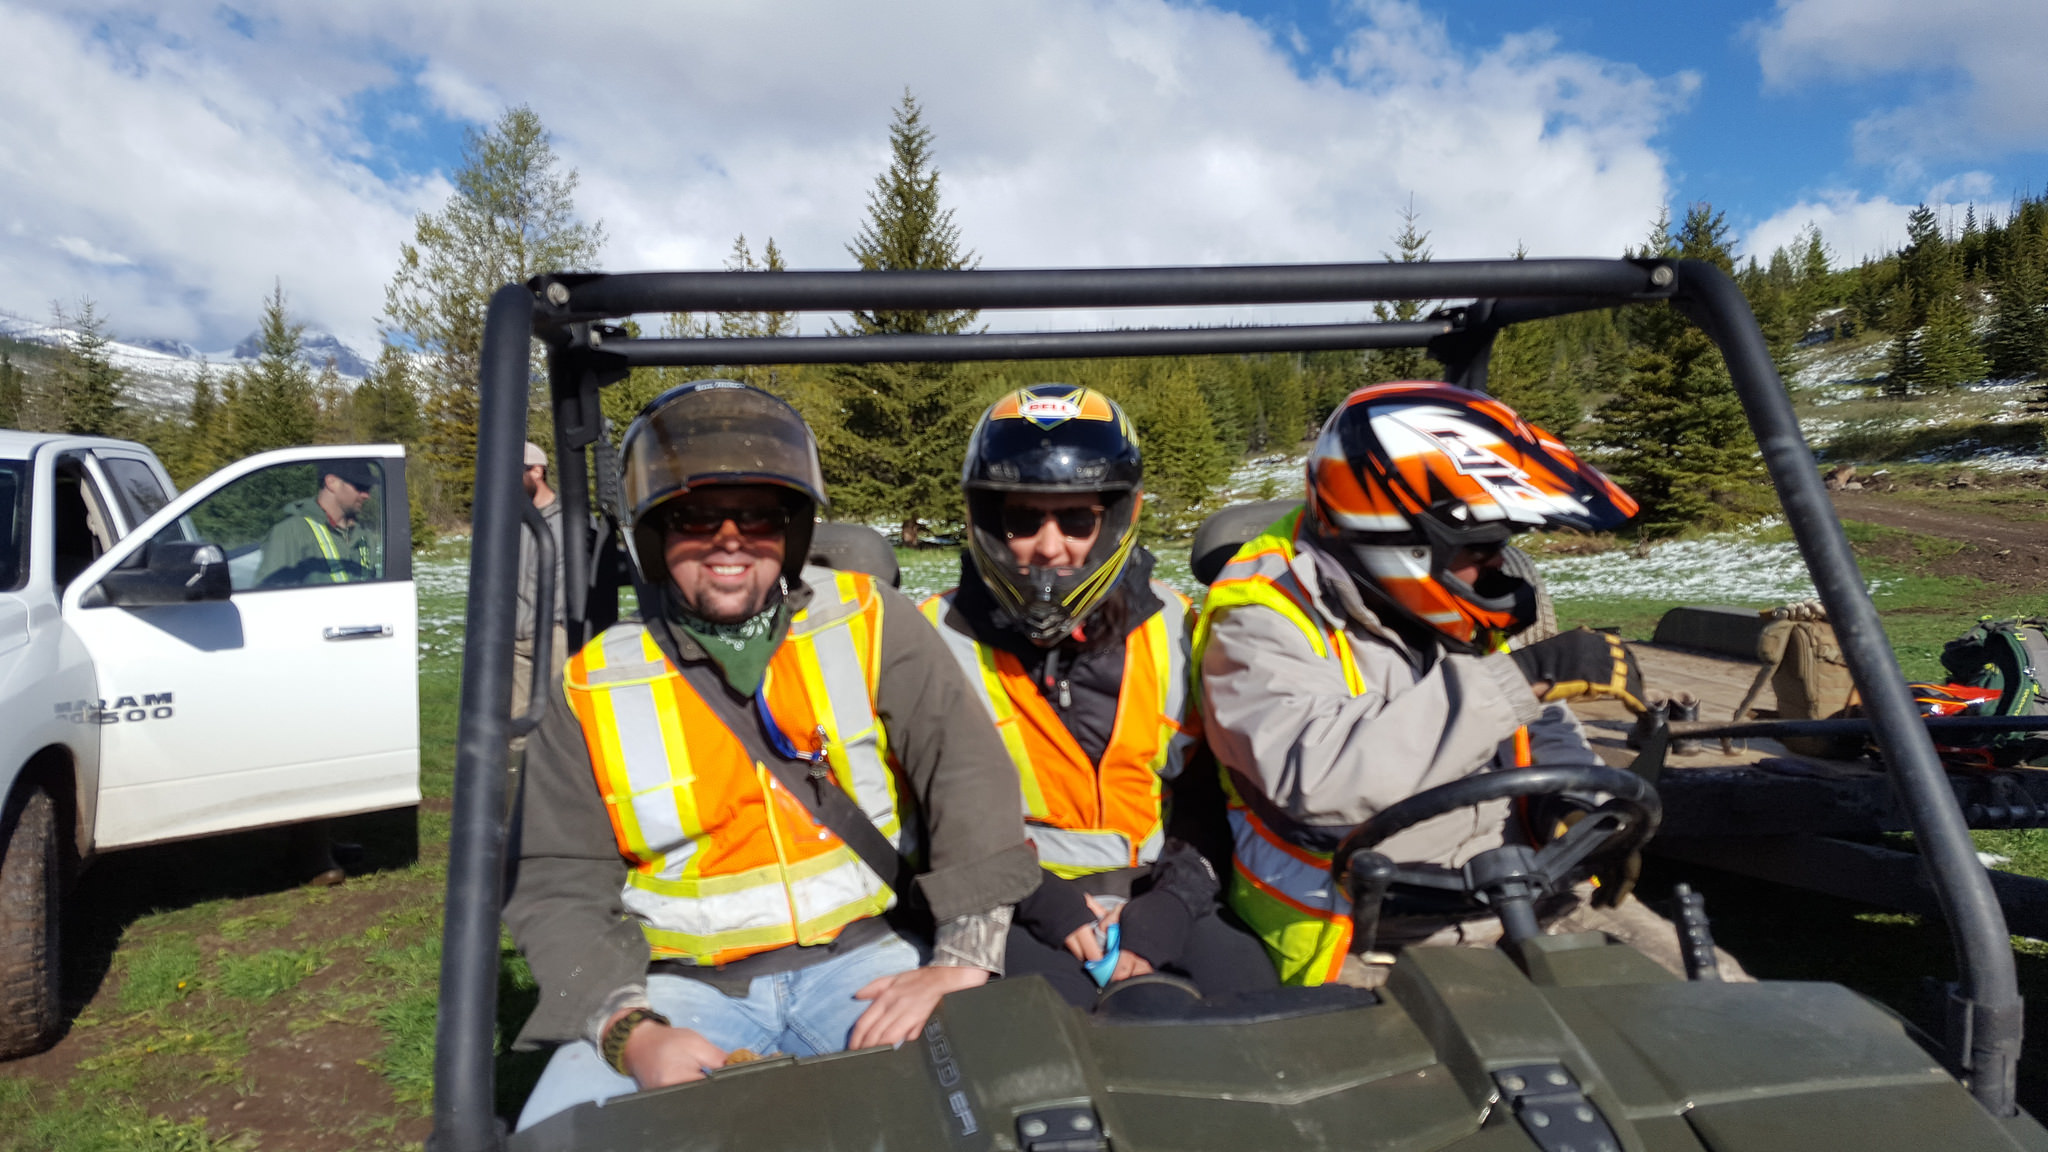 Photo Credit: Rob Taylor  OWC Seasonal Staff using an OHV to access a backcountry site for a restoration project in the Lost Creek area.